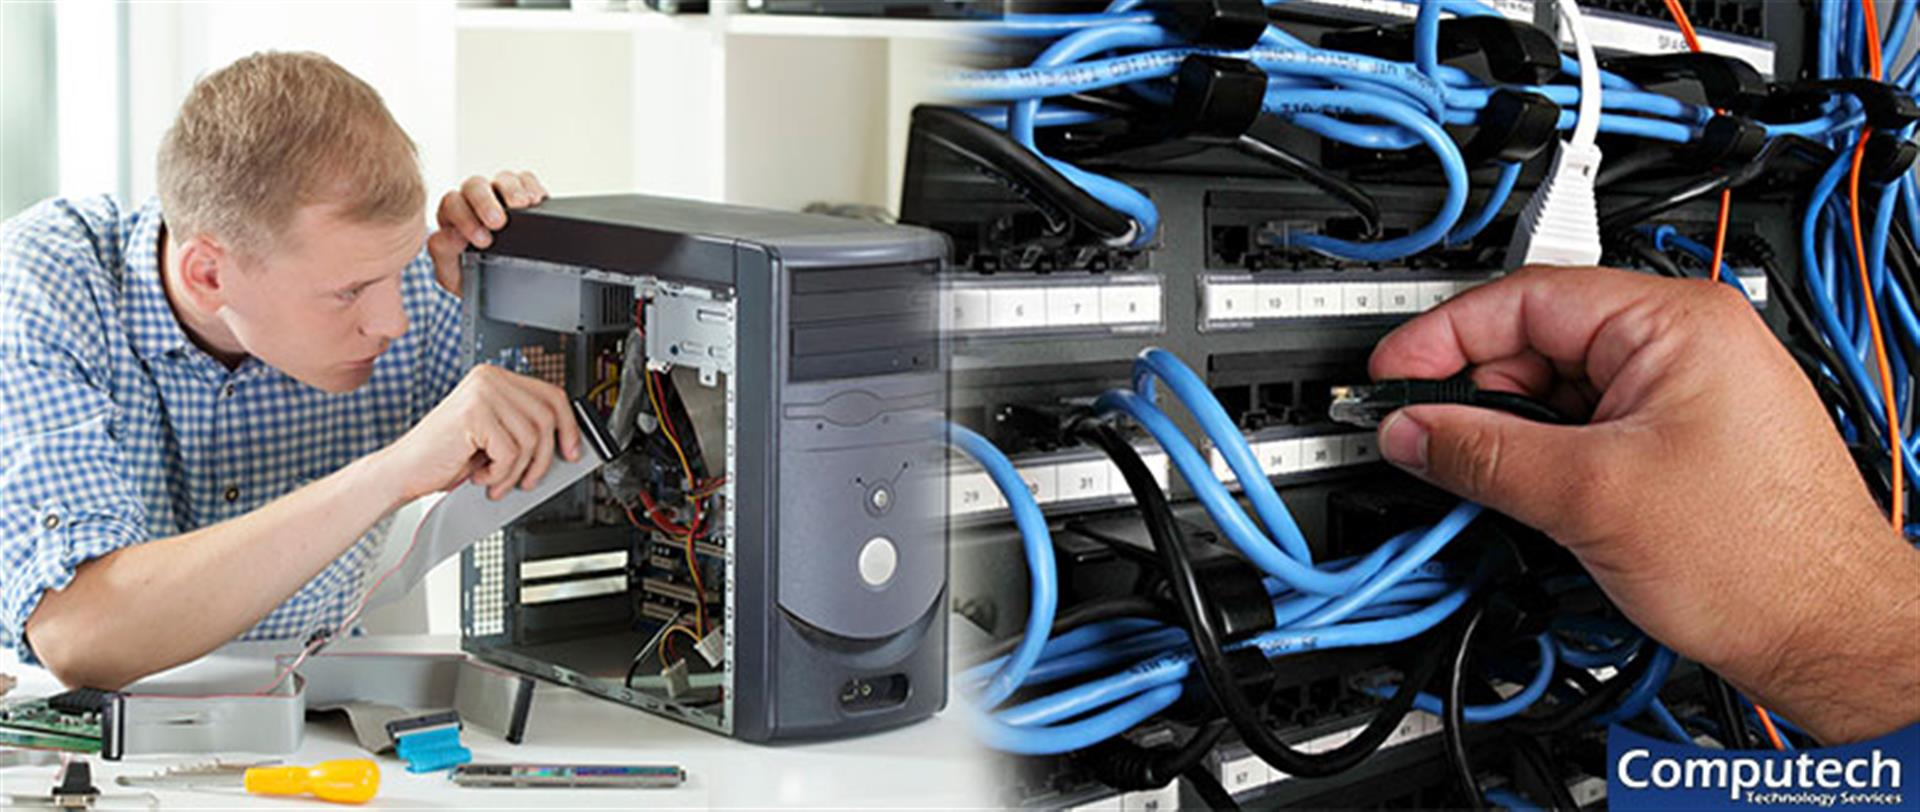 Somerville Tennessee On-Site Computer PC and Printer Repairs, Network, Voice & Data Cabling Services